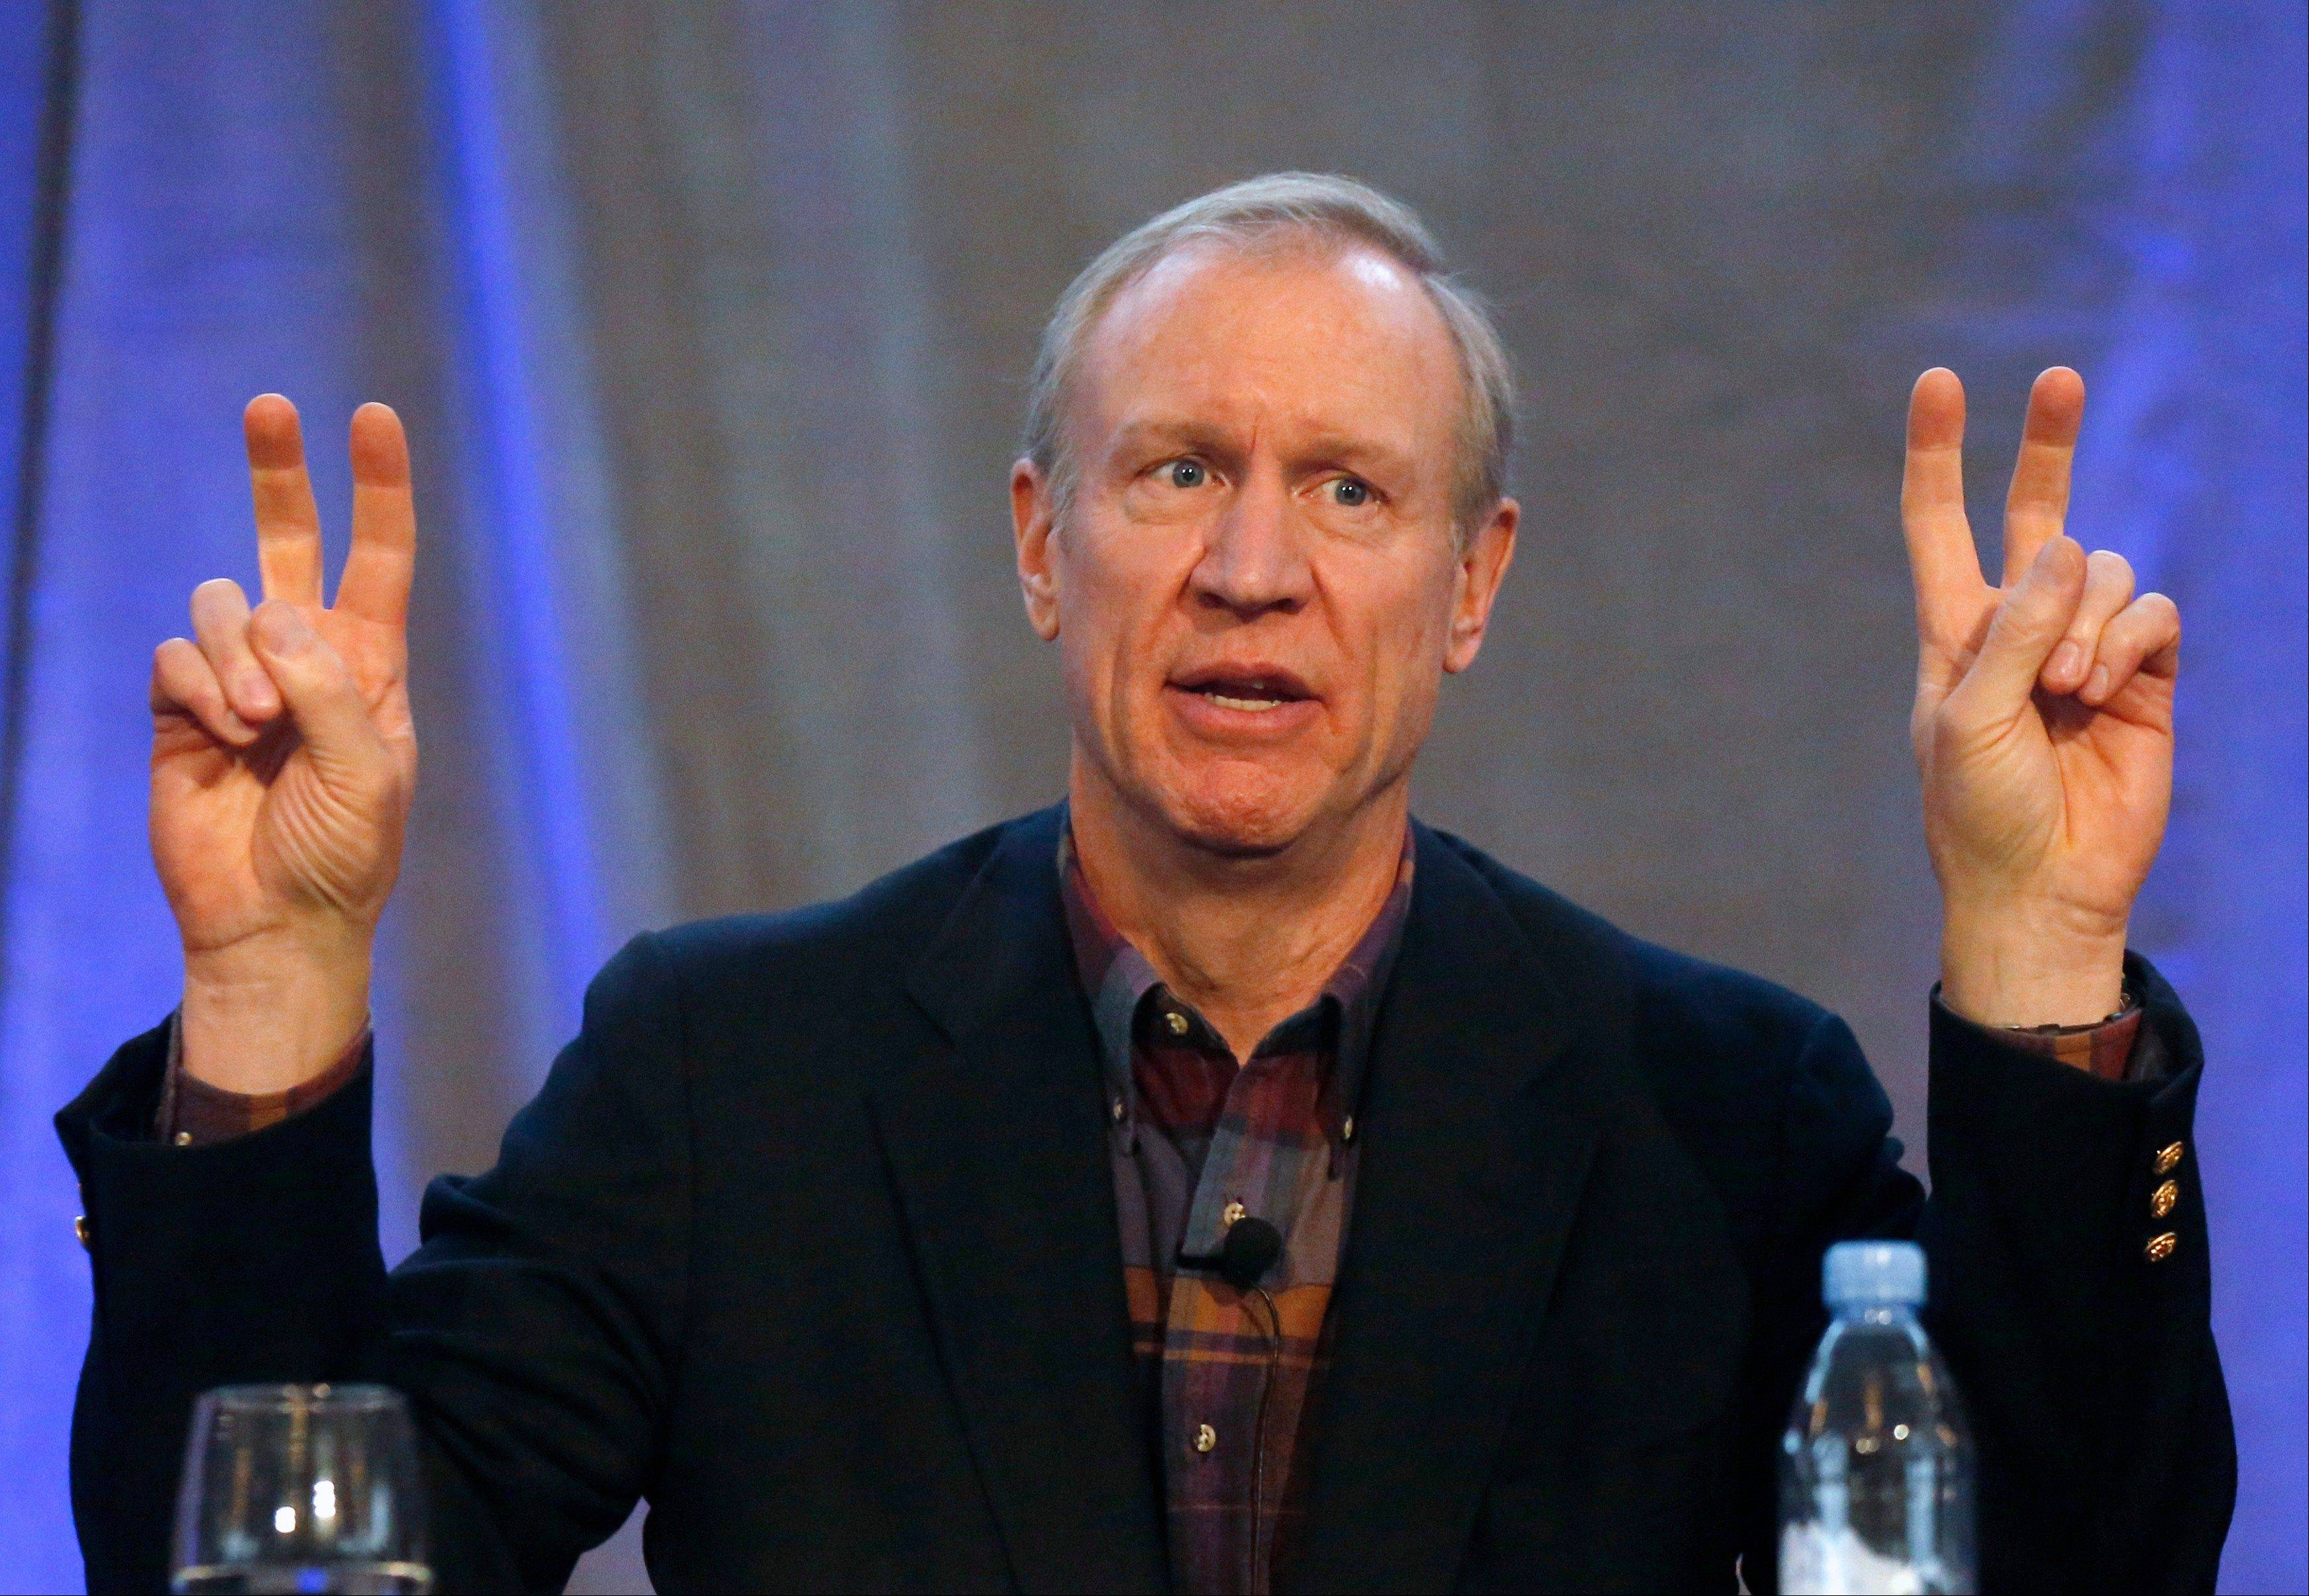 Businessman Bruce Rauner, a Republican candidate for Illinois governor, says labor unions are scared of his platform.